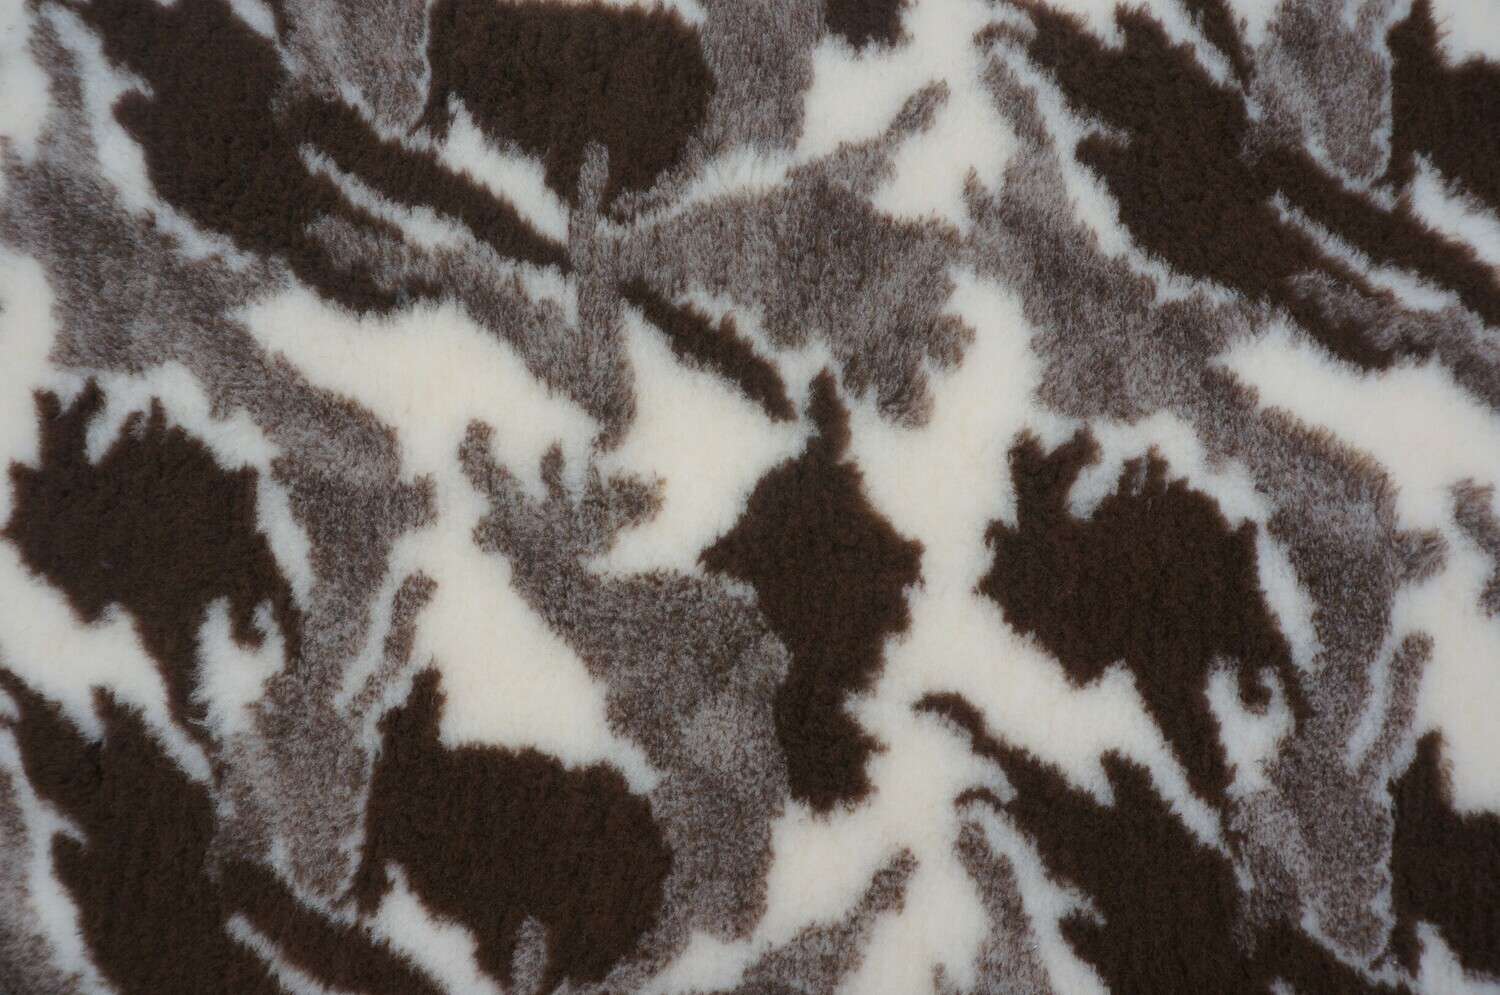 { Single Sheets }  Ultra Premium Non-Slip Backing Original Vet Bedding Fleece : Camouflge : Brown / Sand and Cream - Ref : (6252)